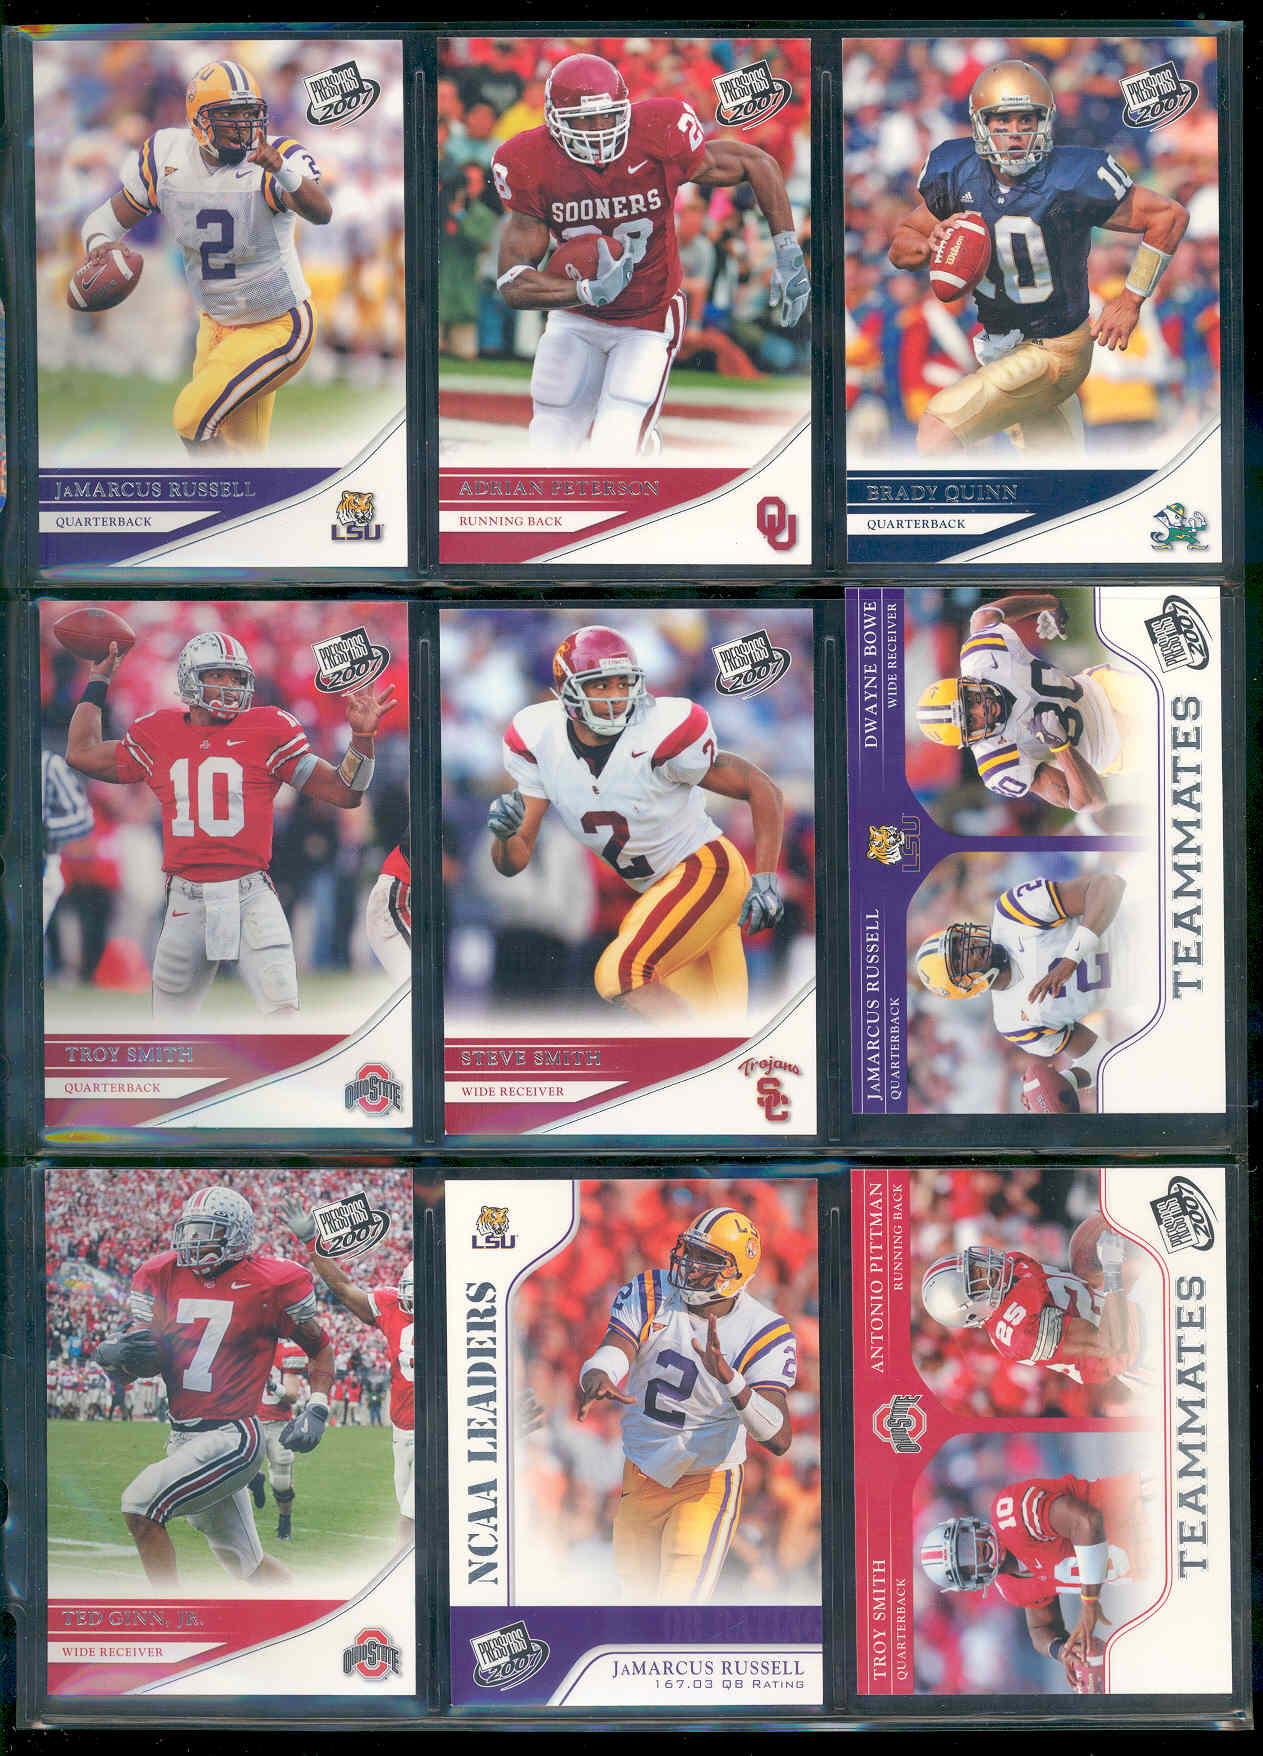 2007 Press Pass Complete Base Set 1-100 w/ Adrain Peterson Brady Quinn JaMarcus Russell Calvin Johnson Ted ginn Jr  Rookie Cards